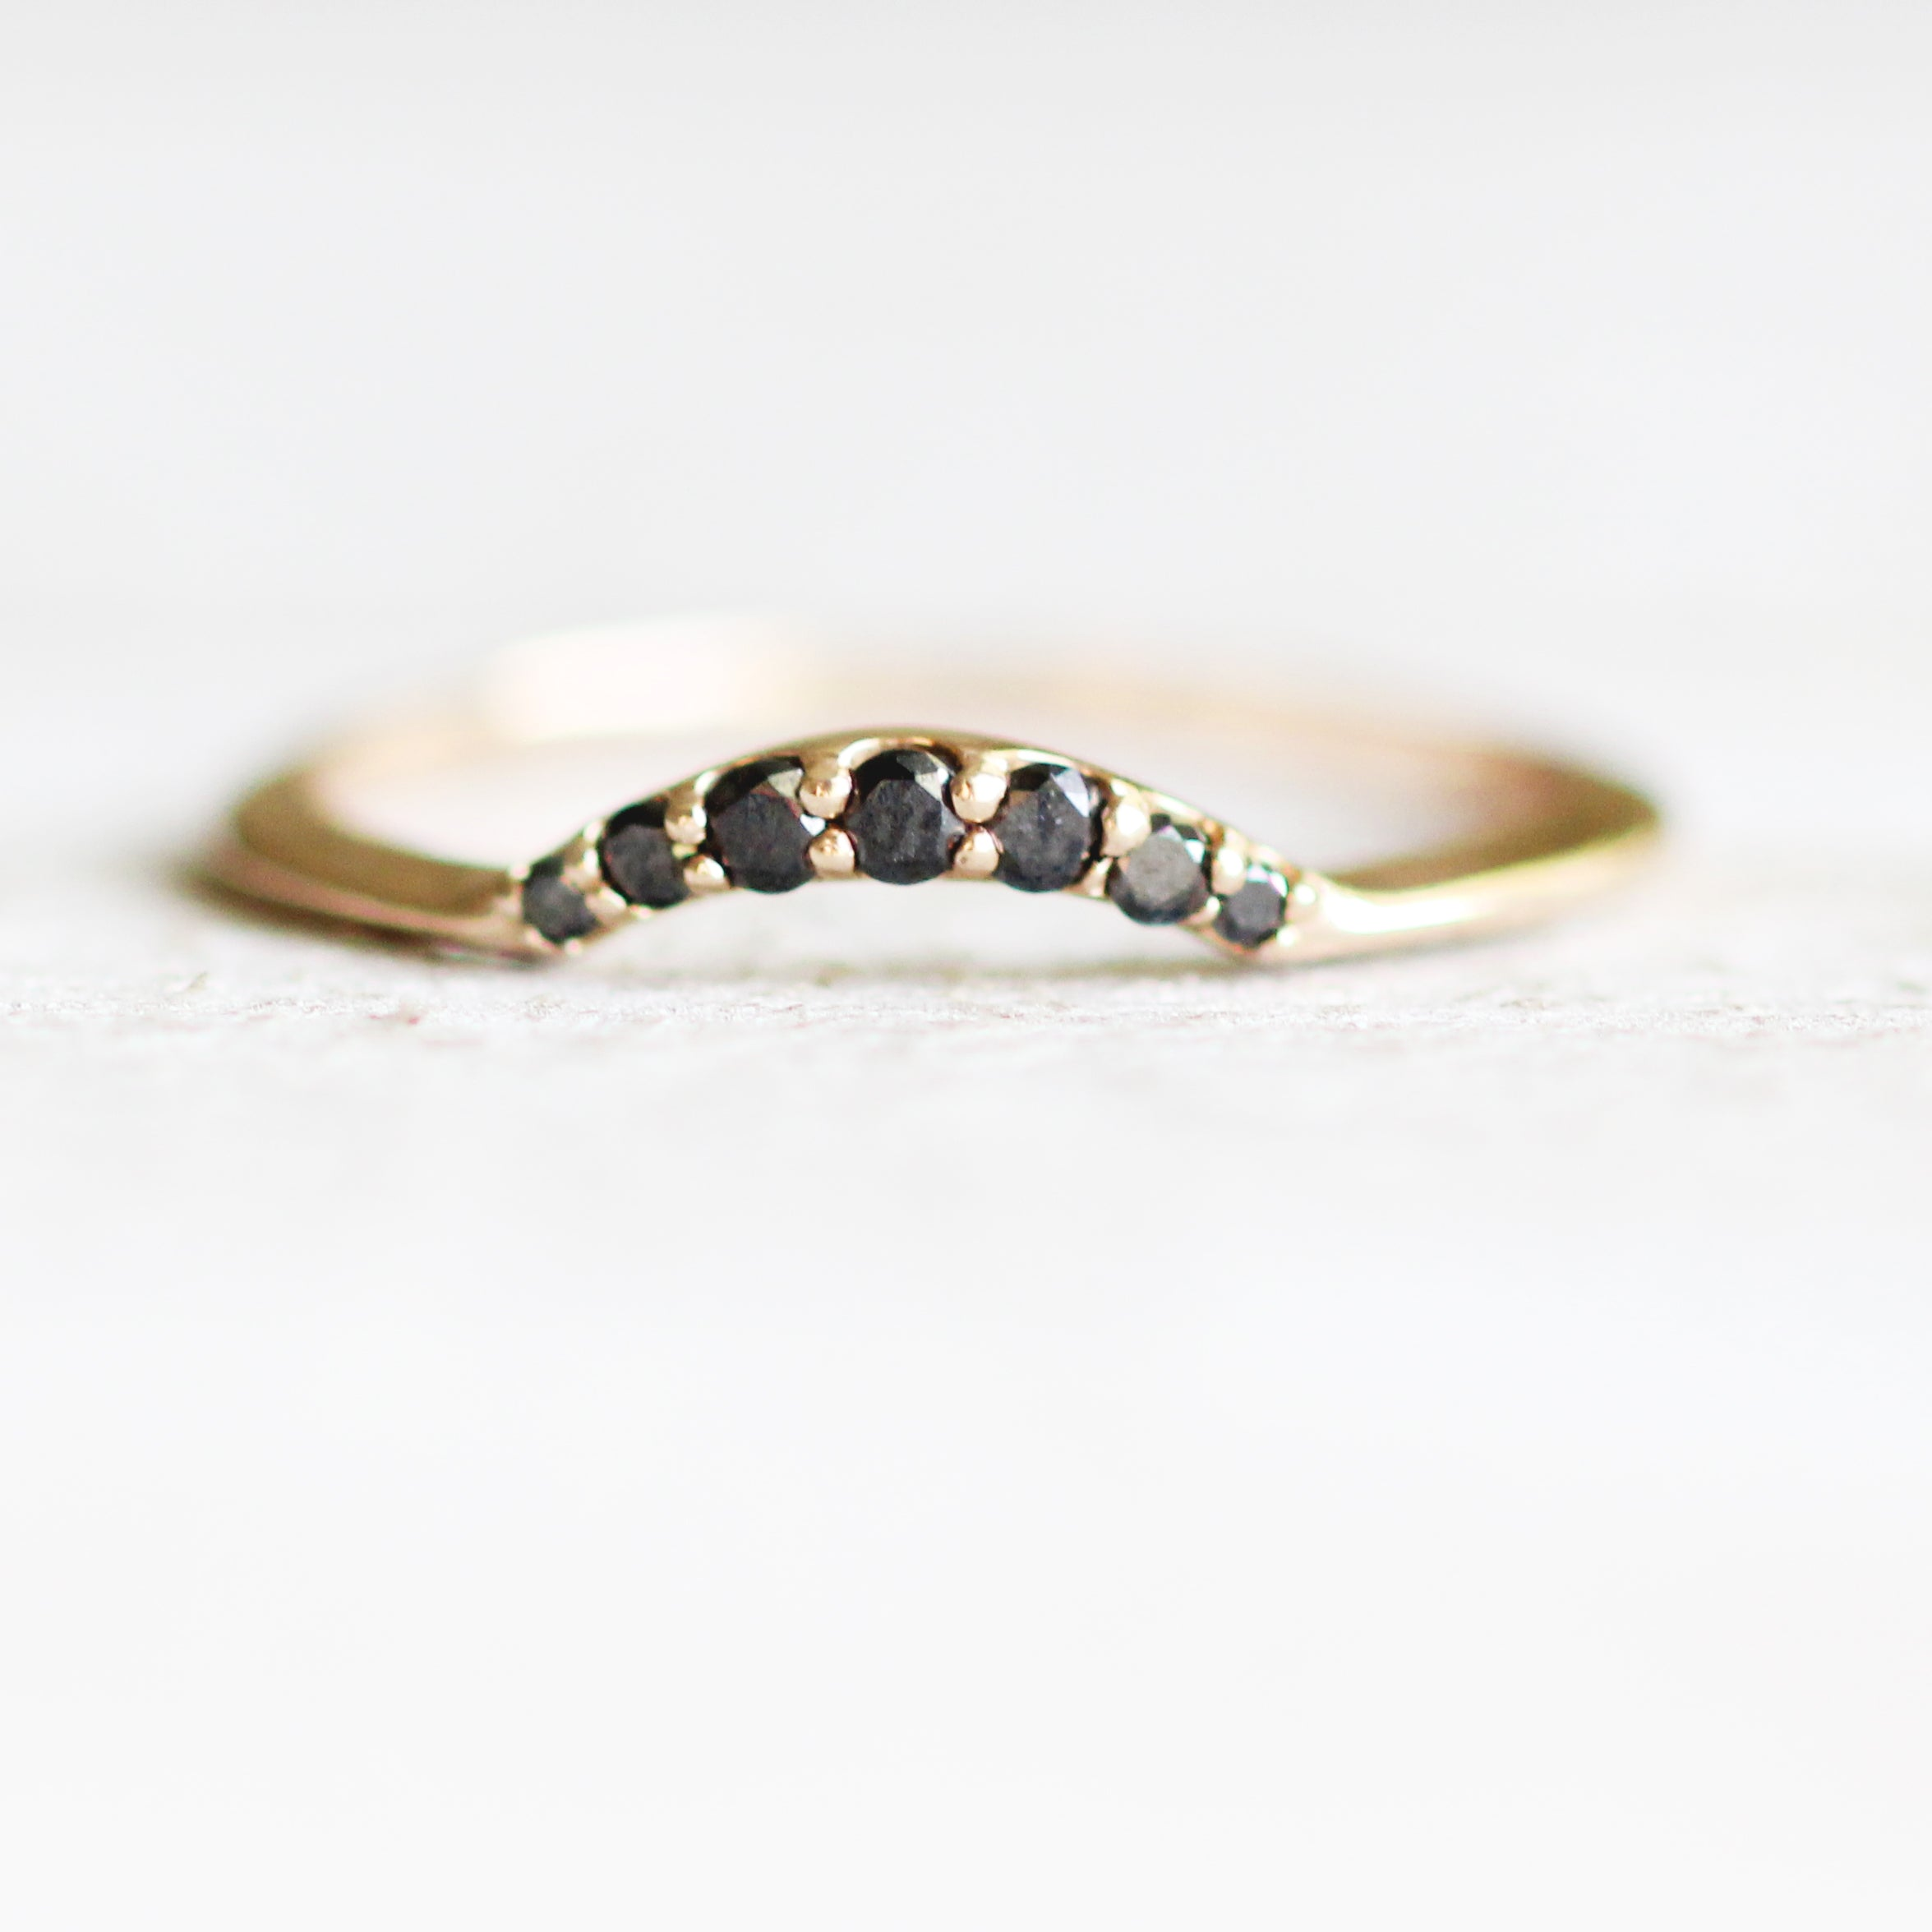 Evary - Custom Designed Curved Diamond Wedding Stacking Band - made to order - Celestial Diamonds ® by Midwinter Co.